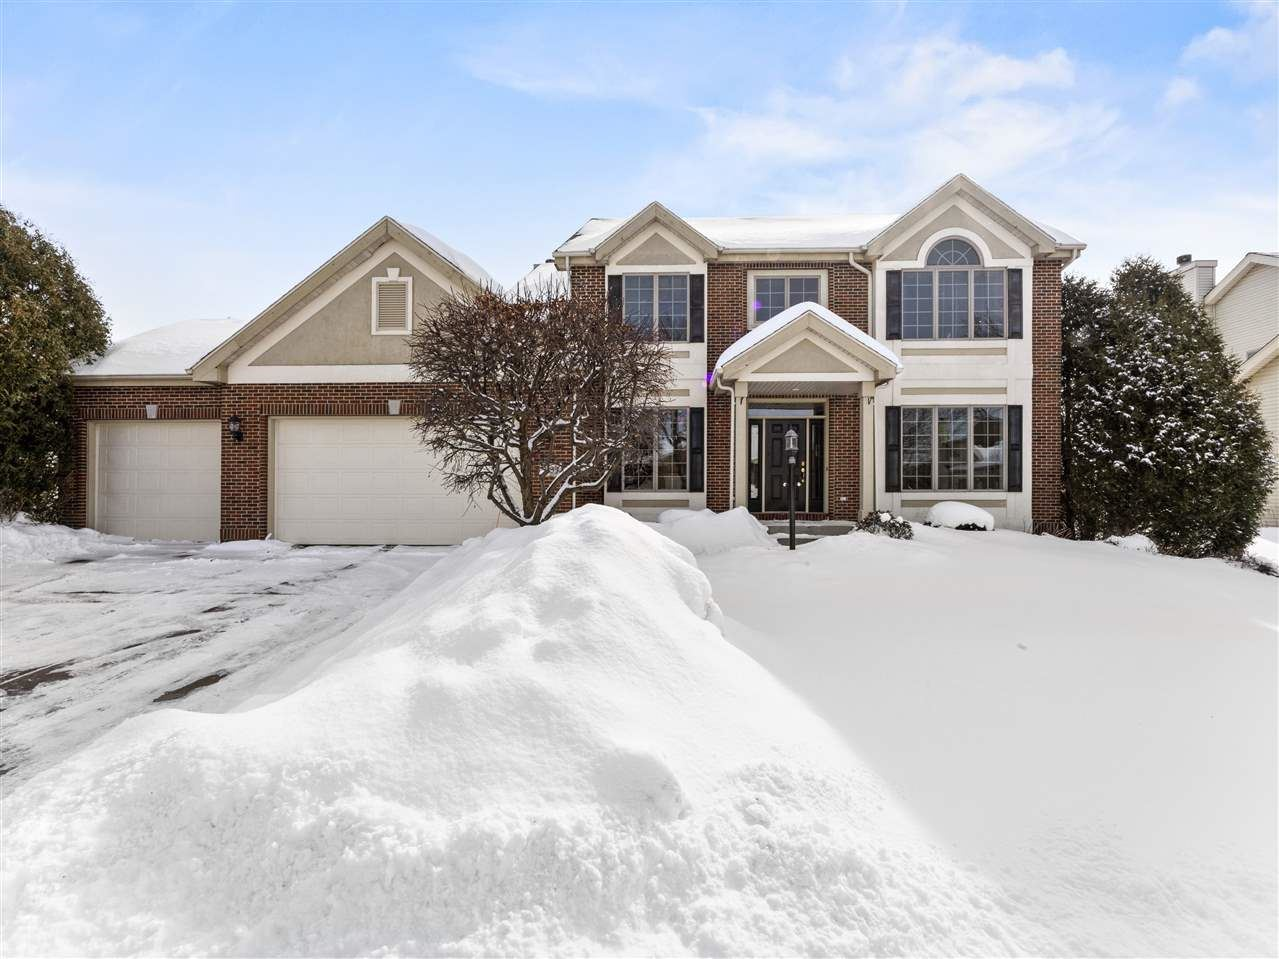 9133 Settlers Rd, Madison, WI 53717 - MLS#: 1902750